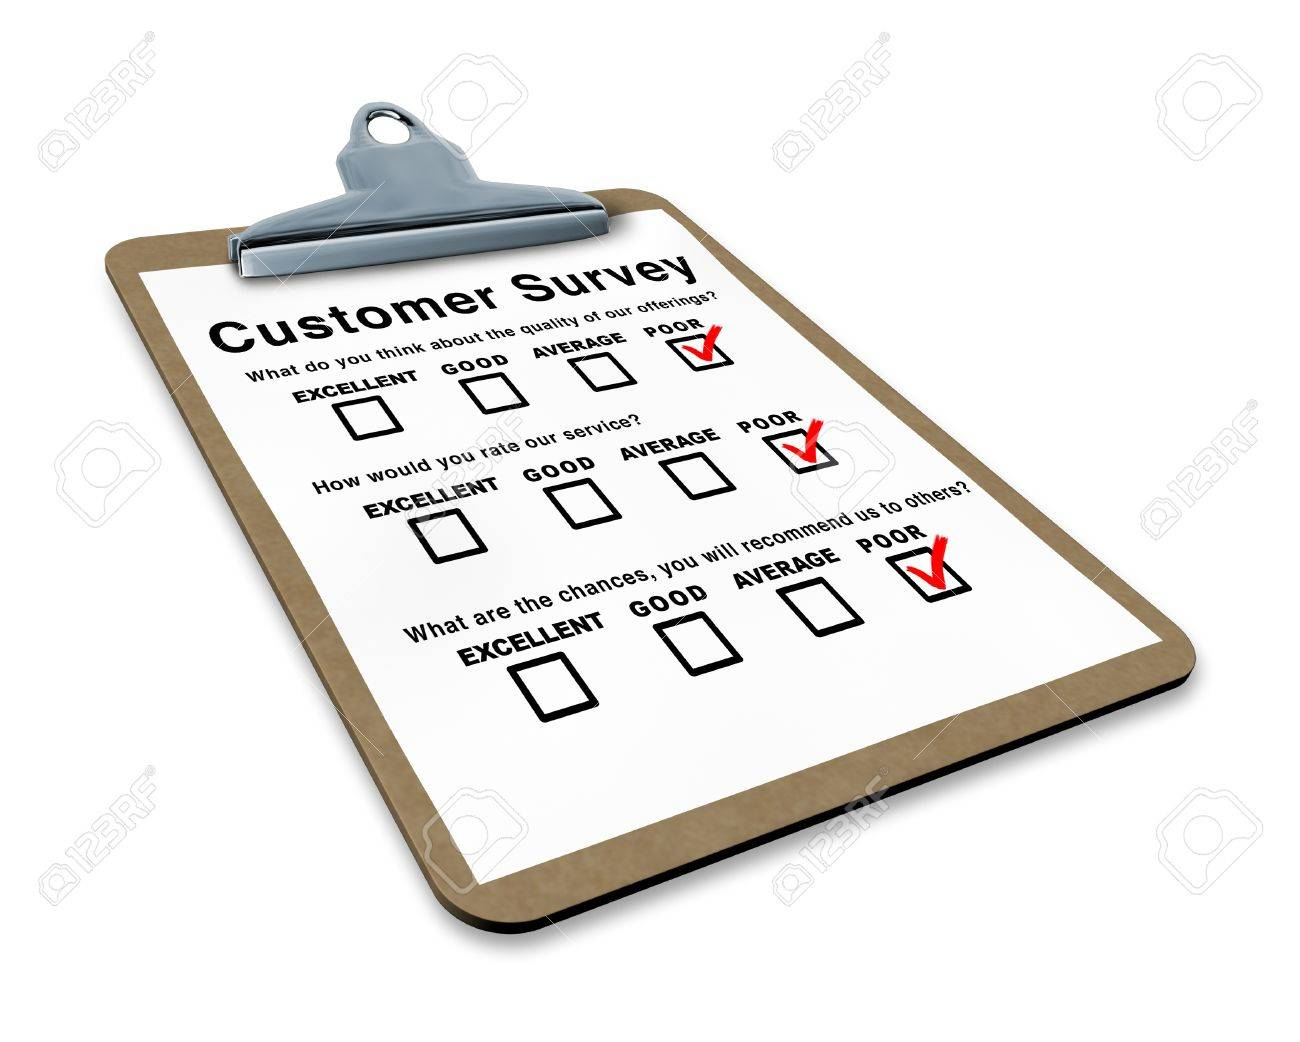 Poor customer survey on a clipboard representing terrible service questionnaire with blank feedback form for quality control Stock Photo - 10843731